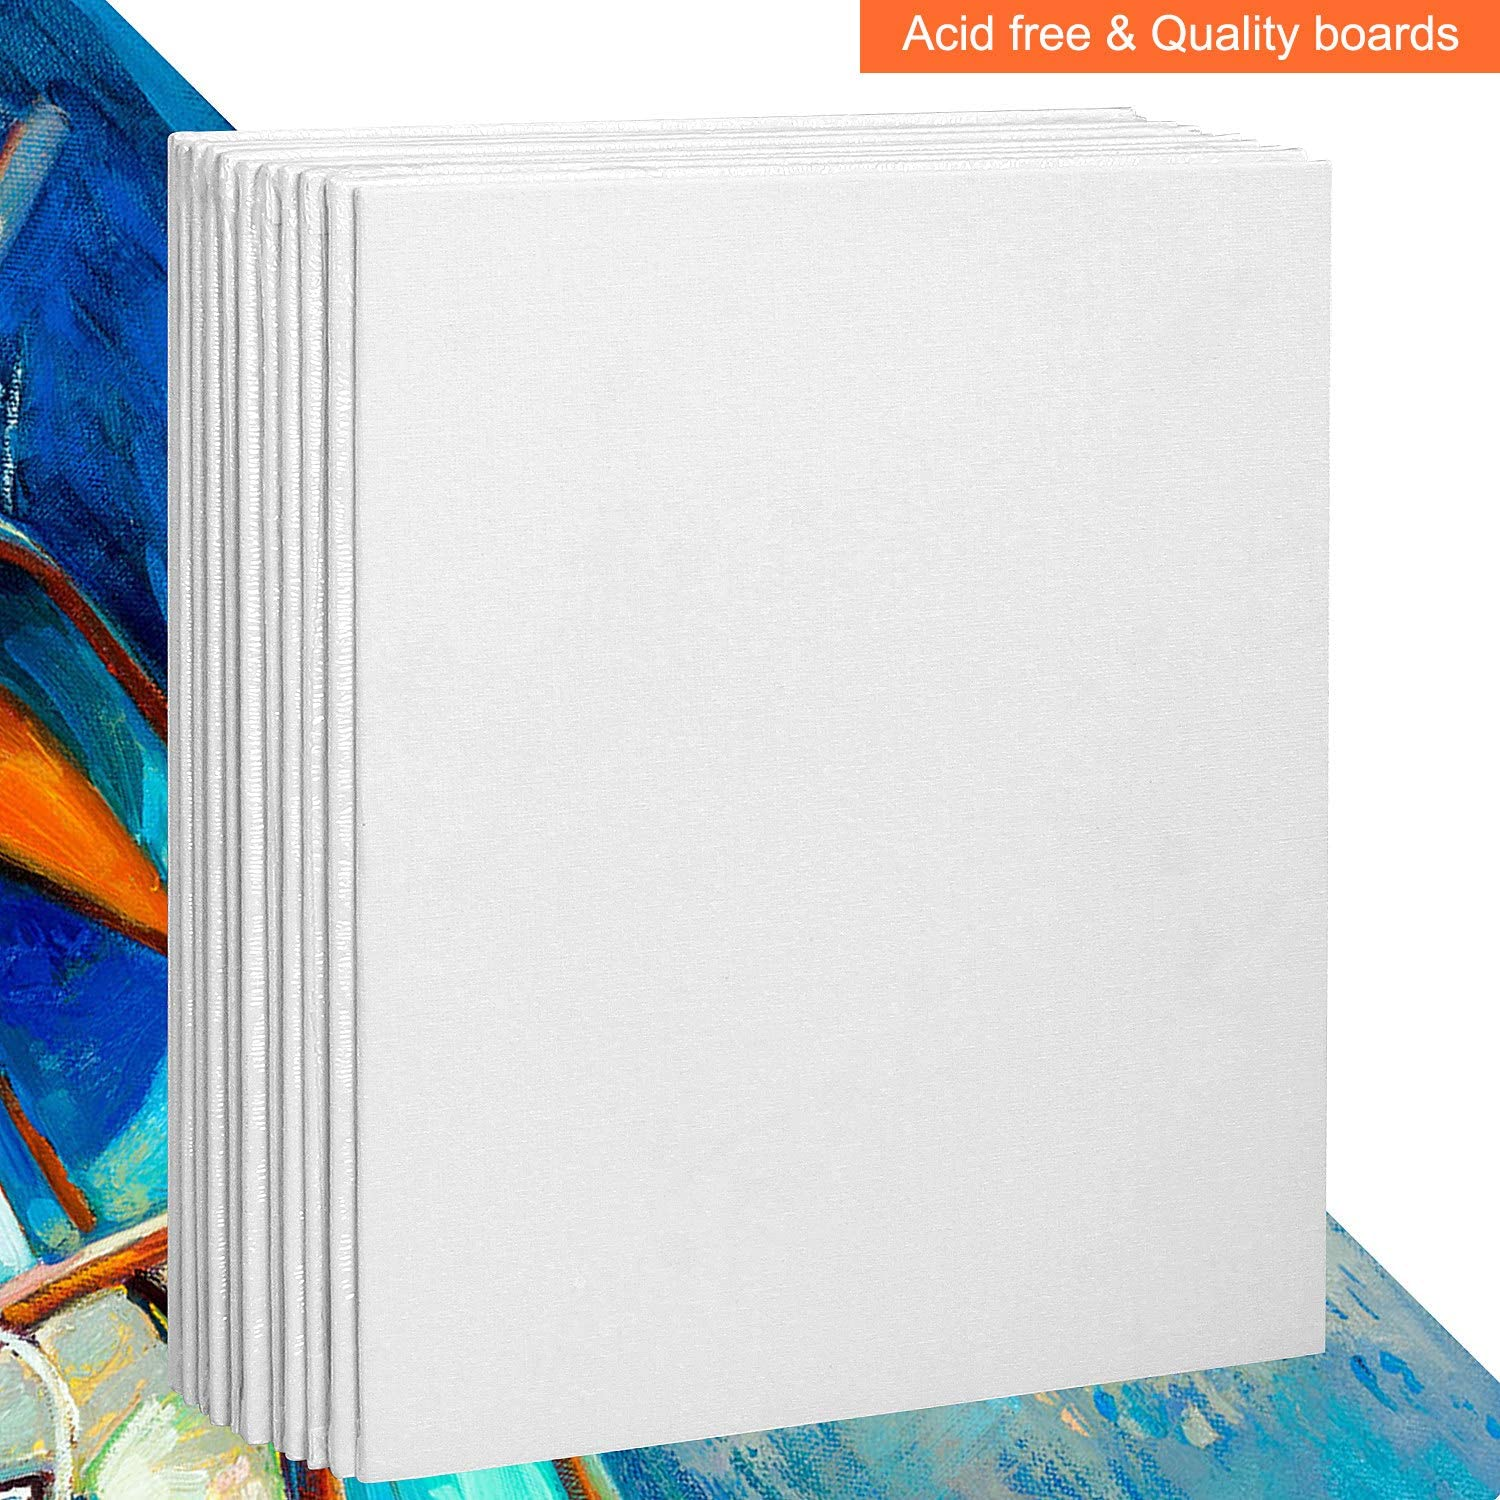 LANIAKEA 12 Pack Canvas Panels 8x10 Artist Canvas Boards for Painting